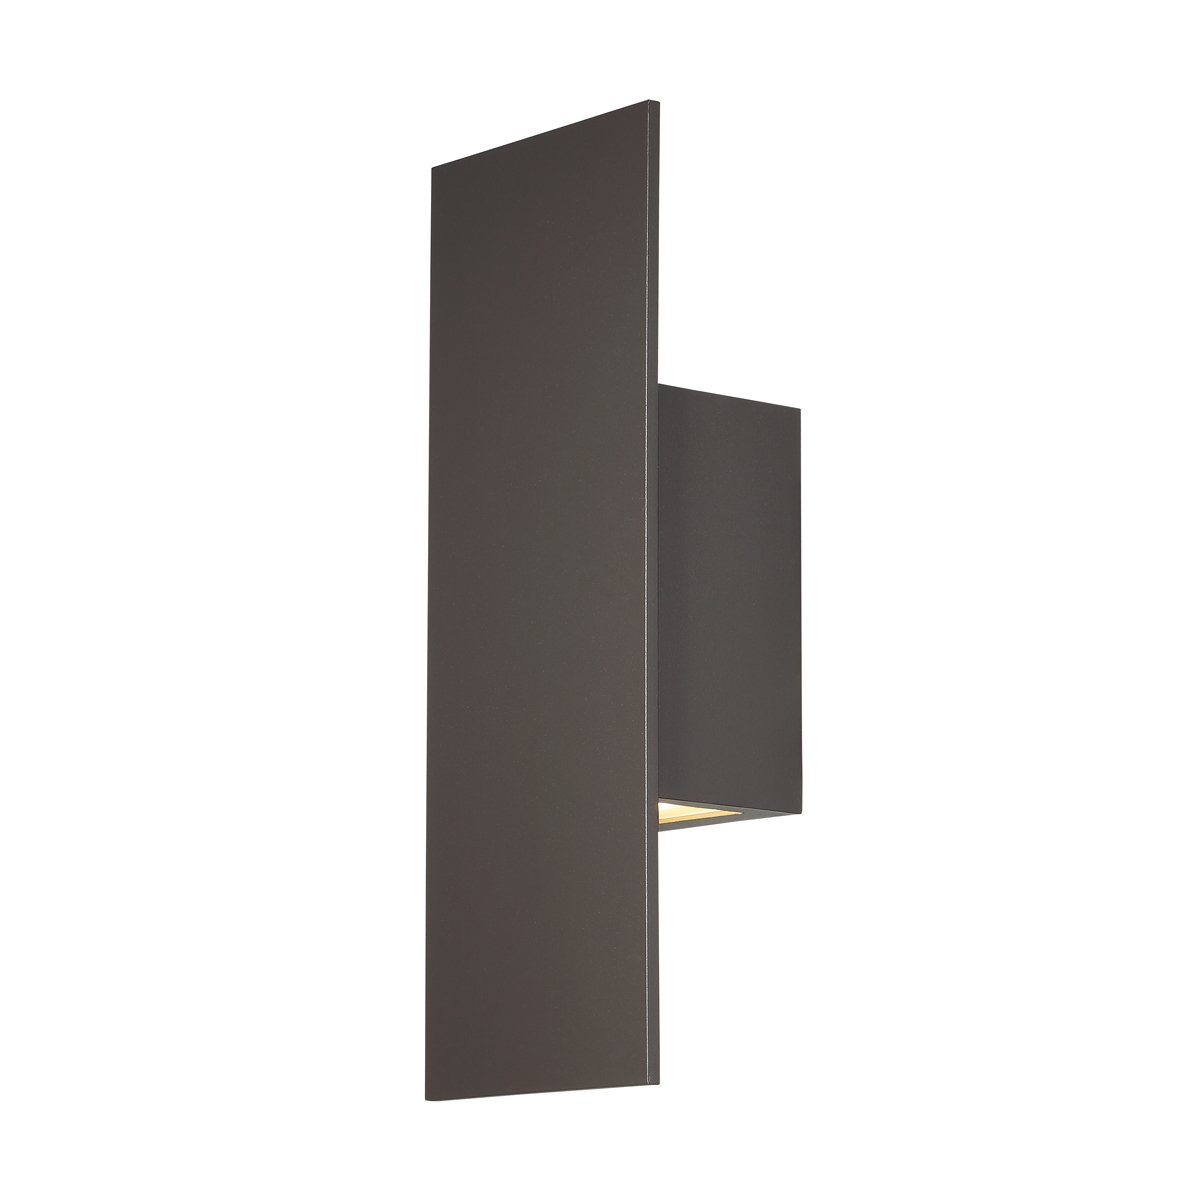 WAC Lighting WS-W54614-BZ Icon LED Outdoor Wall Light, 14 Inches, Bronze